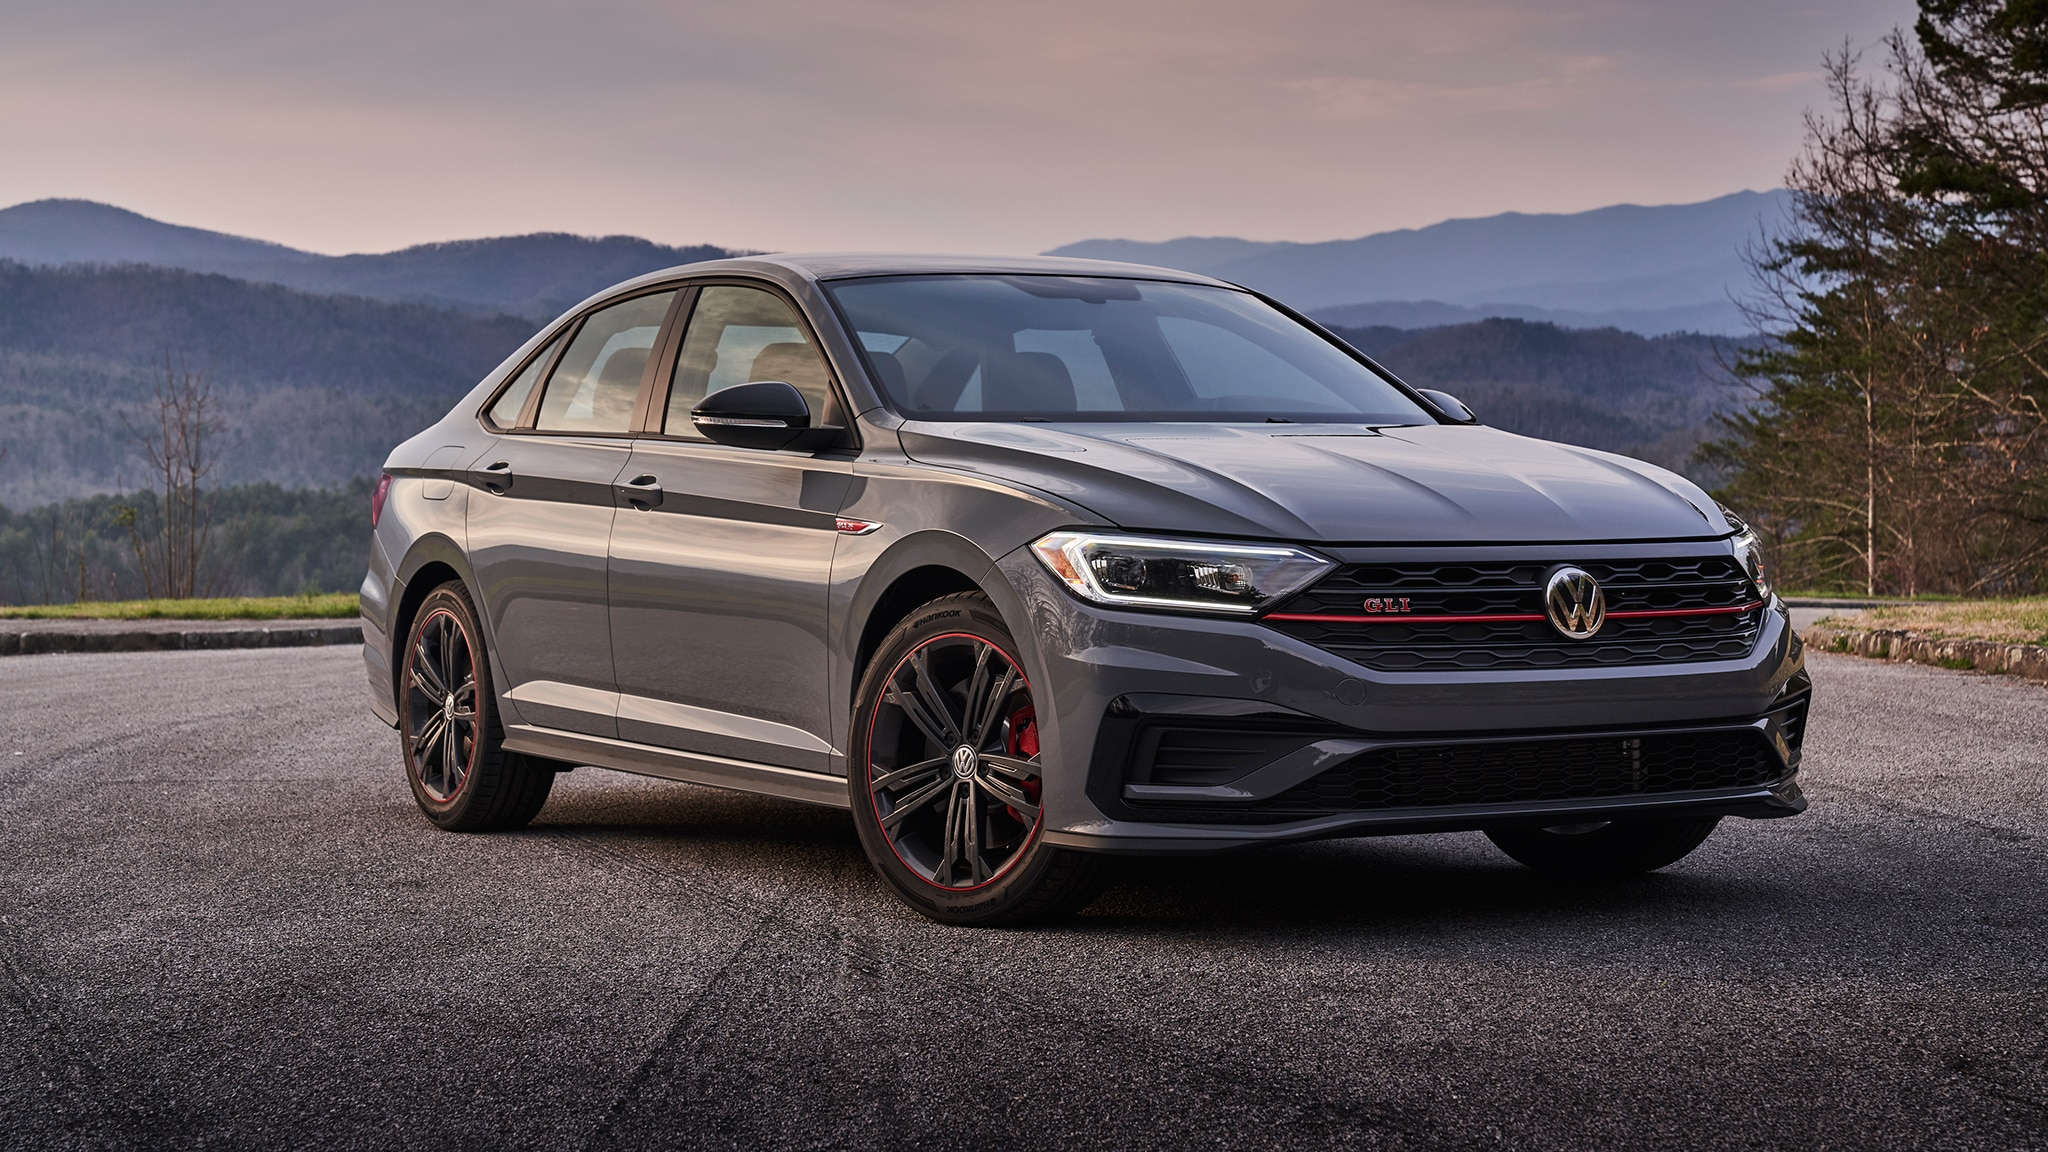 While the top sel and sel premium receive the premium content, we think the se. Volkswagen for 2020: The EVs, New Cars, and More to Know